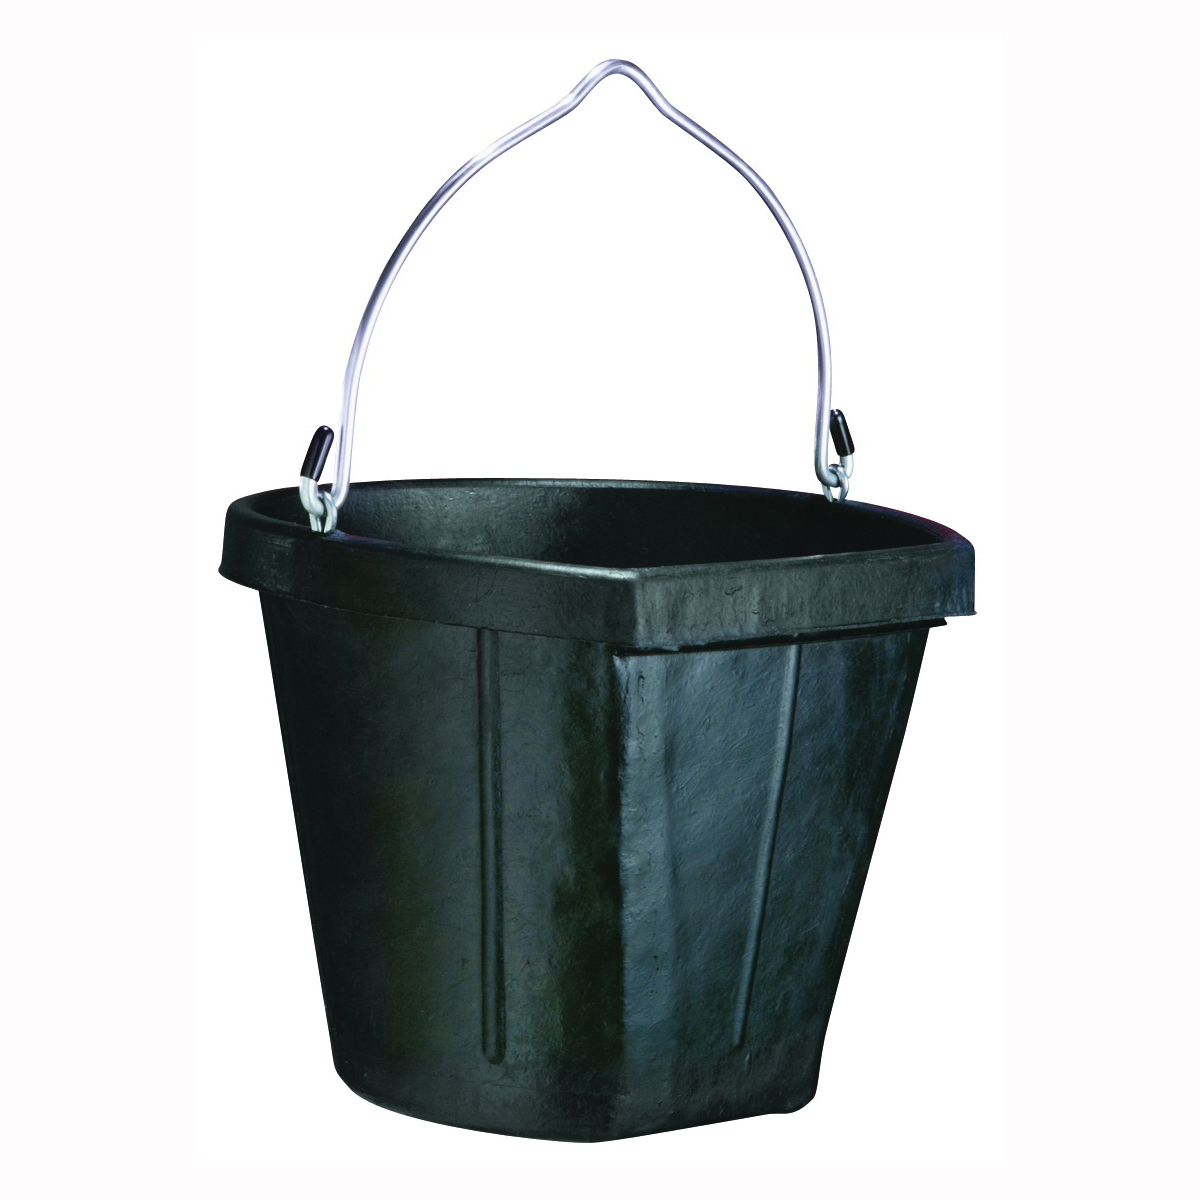 Picture of FORTEX-FORTIFLEX B600-18 Bucket, Fortalloy Rubber/HDPE, Black